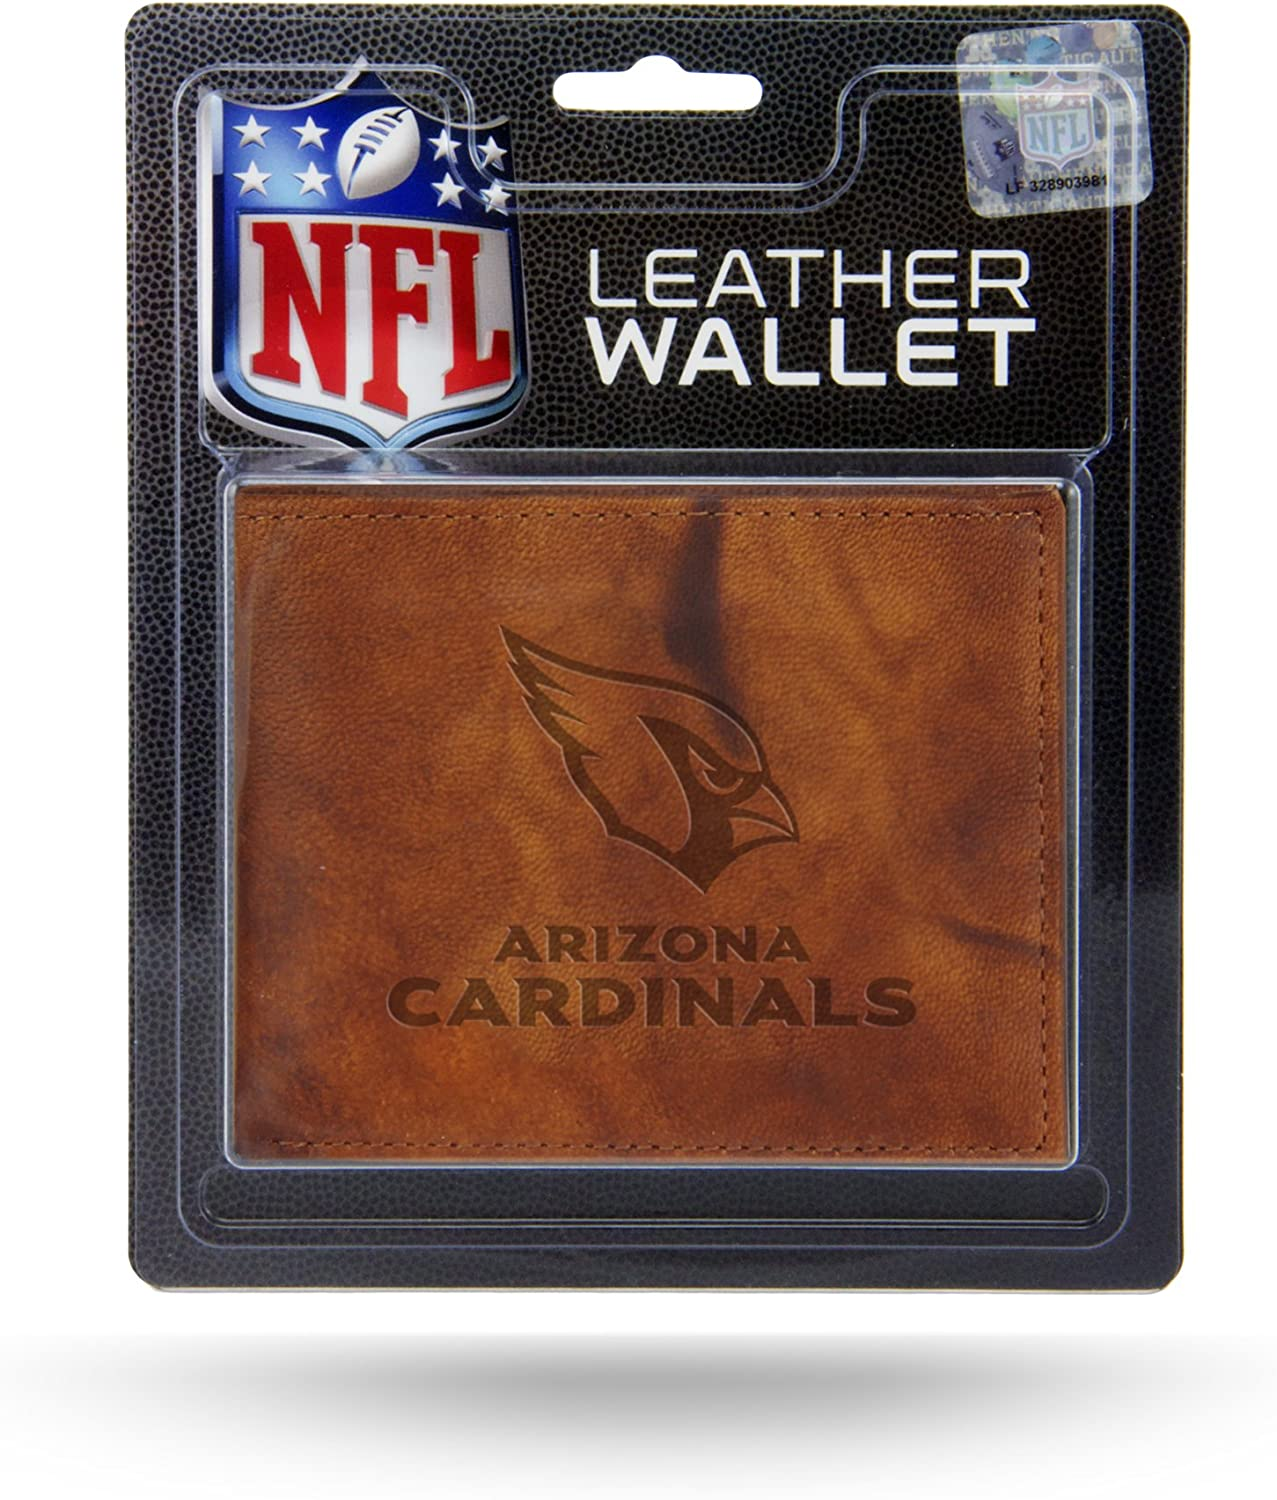 NFL Rico Industries  Laser Engraved Billfold Wallet Los Angeles Chargers